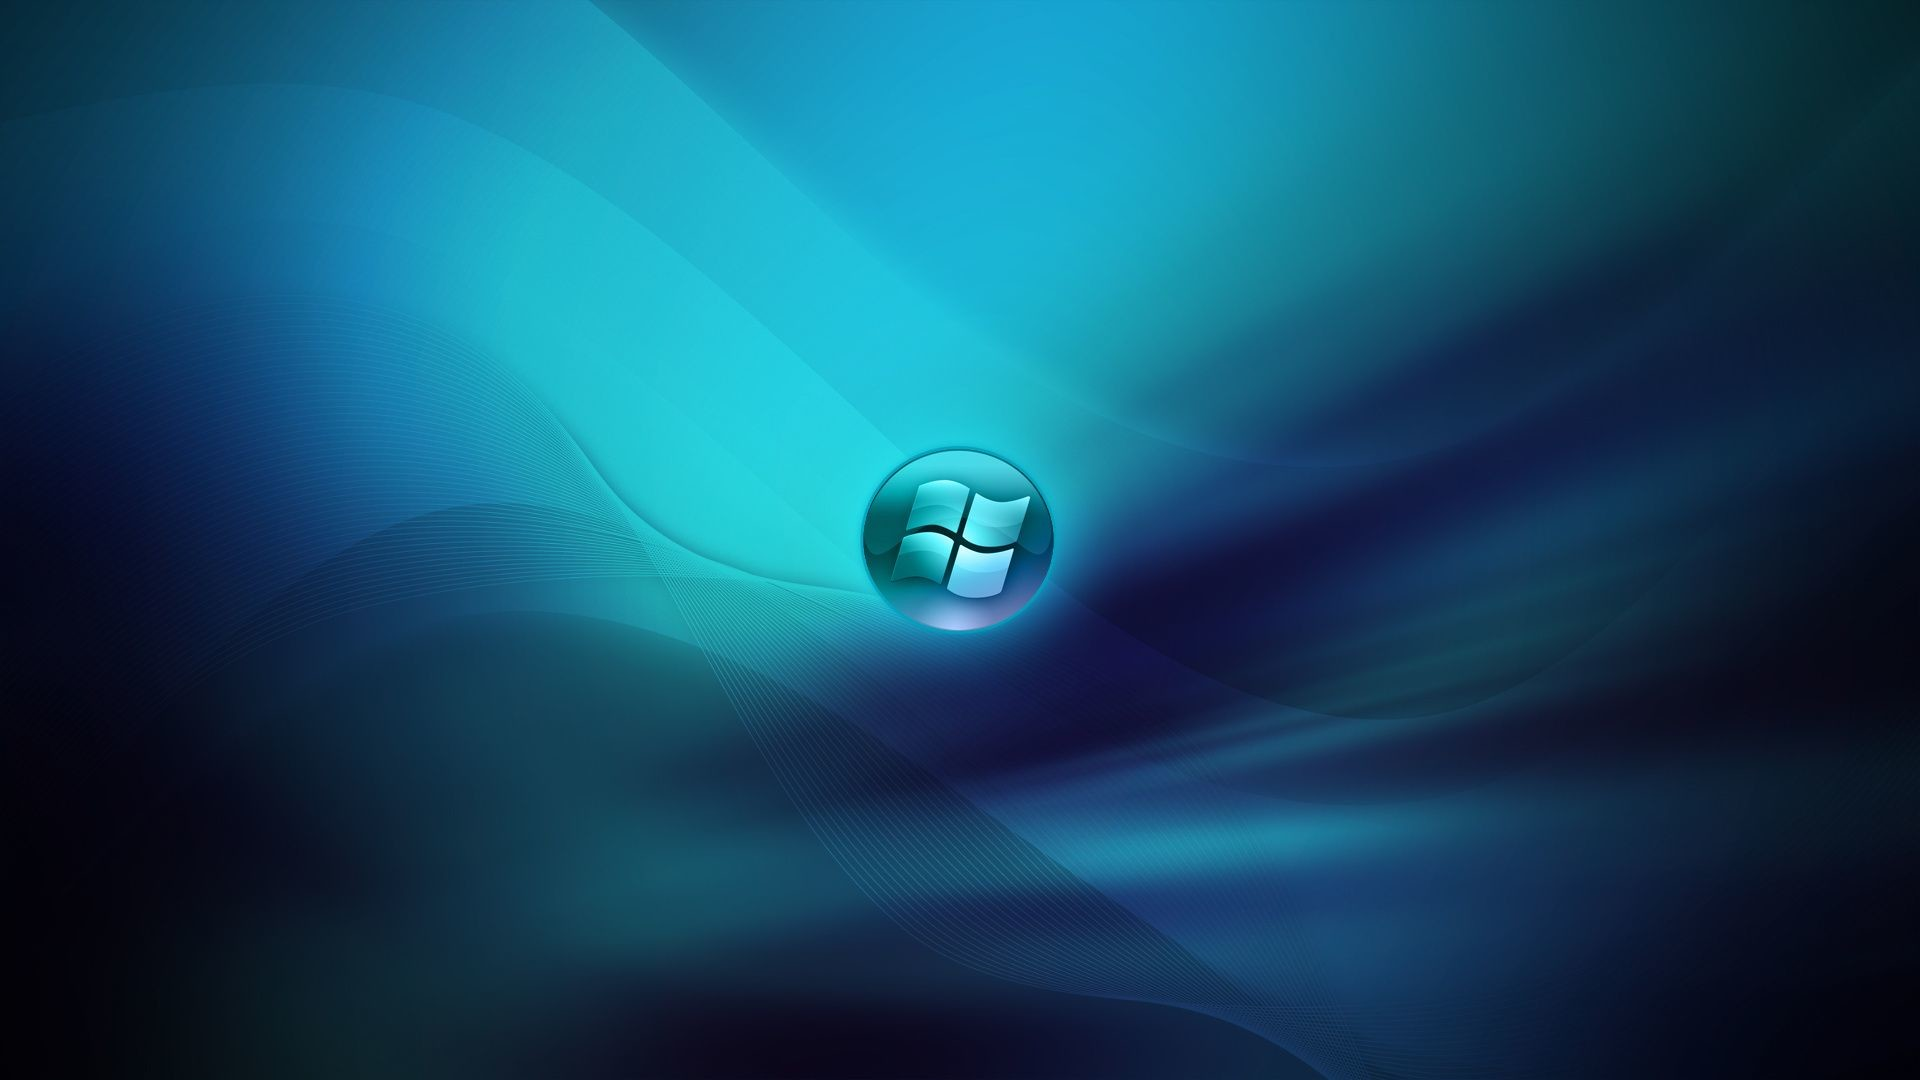 windows 7 ultimate wallpapers hd (61+ images)